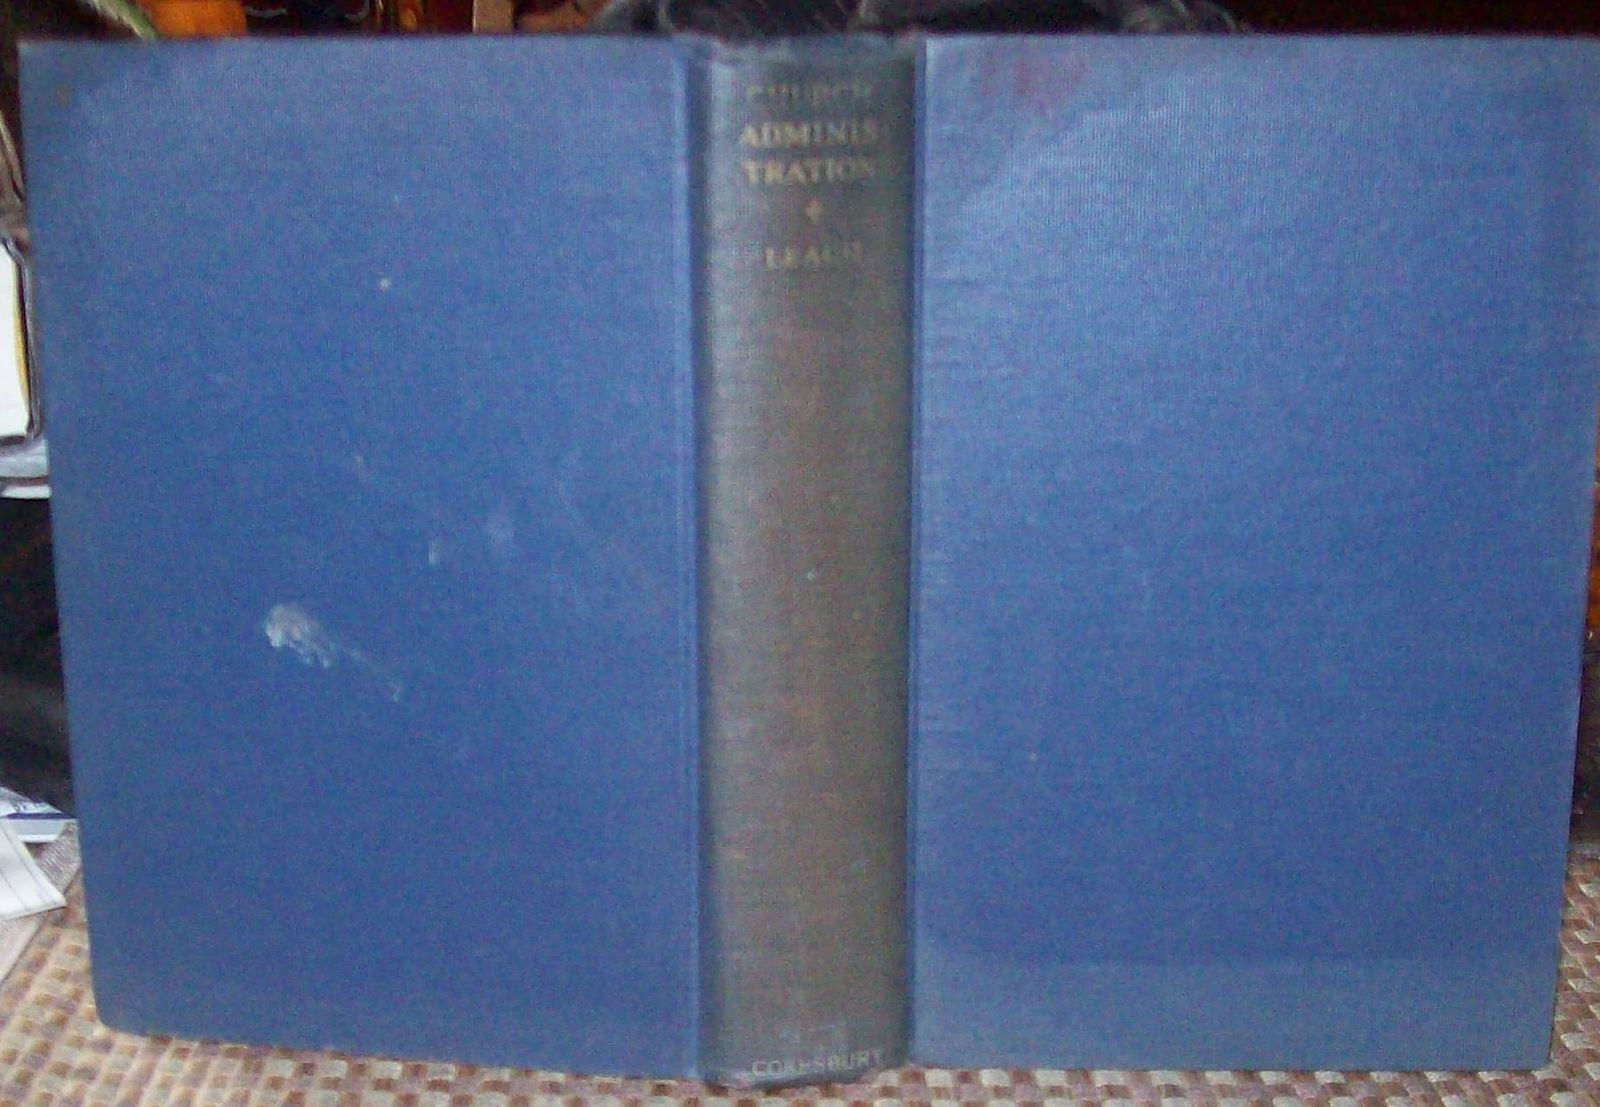 Church Administration by William H. Leach 1931 HB Minister as Leader